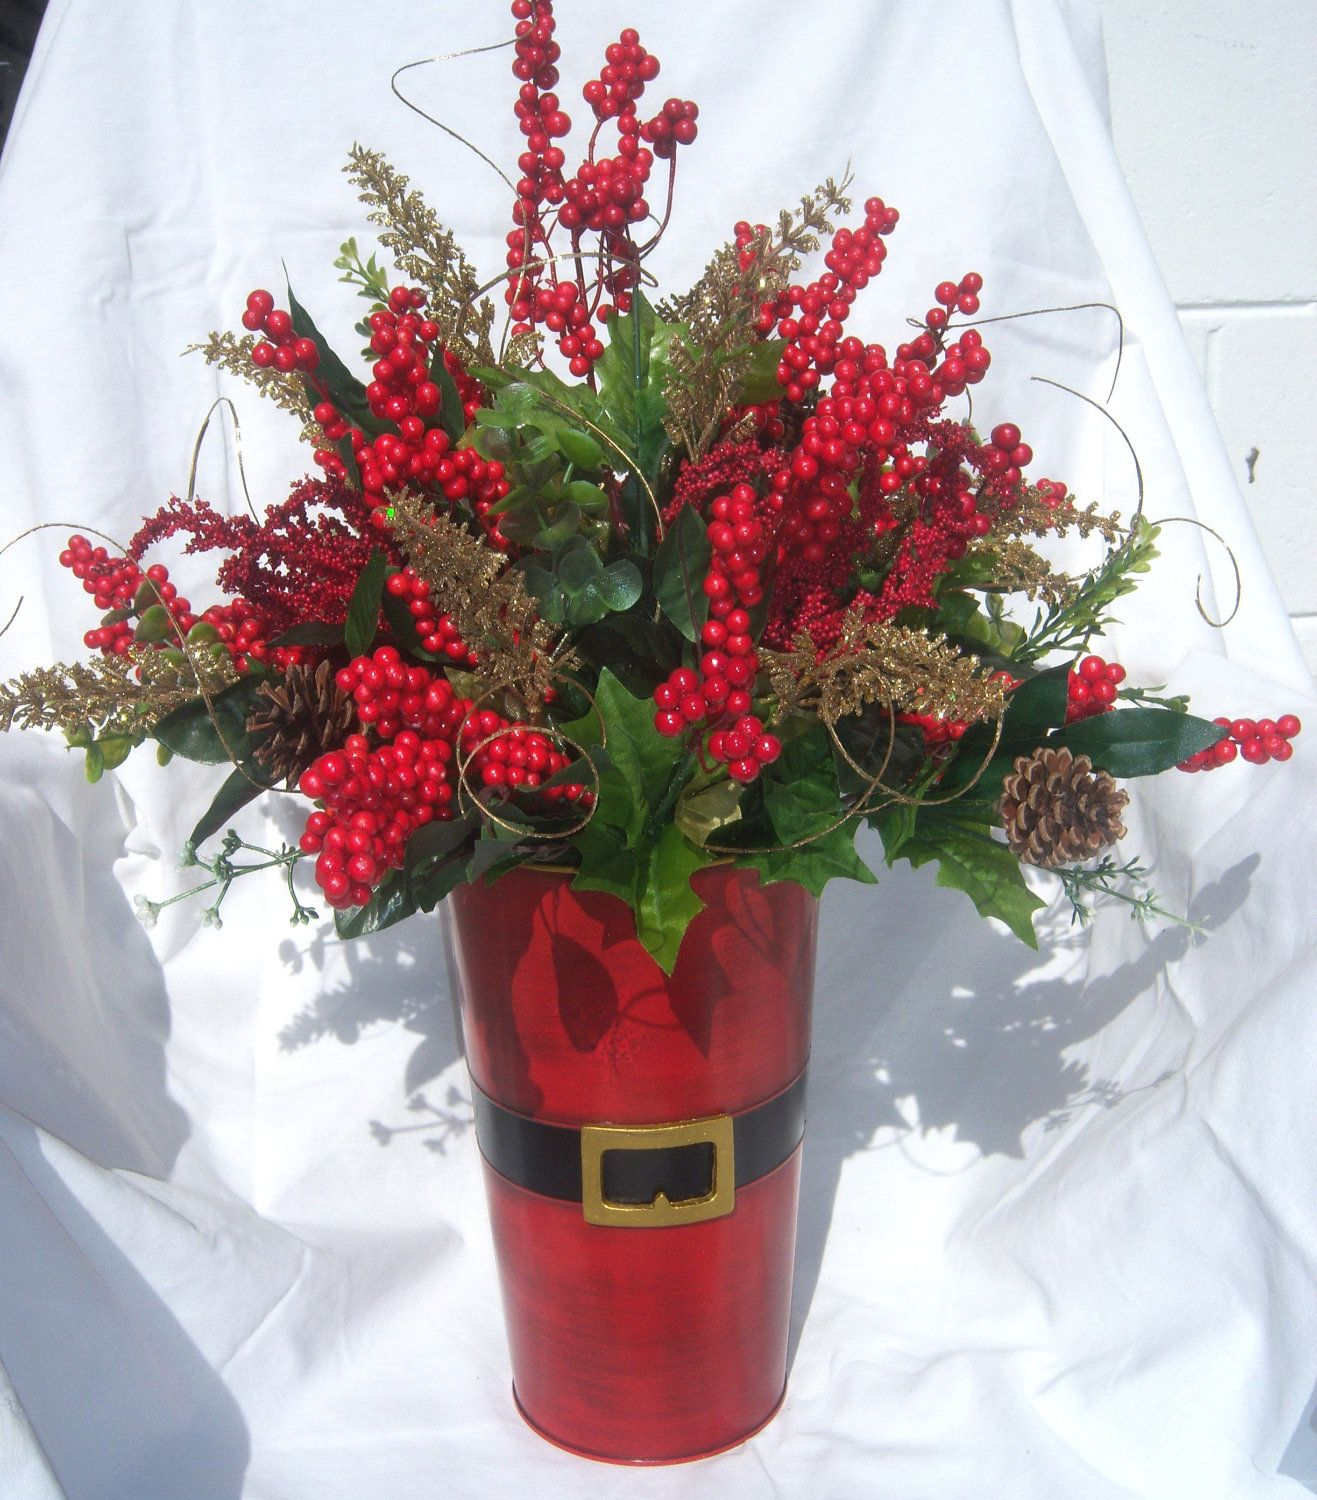 Red silk christmas arrangement christmas centerpieces pinterest cute containercould use a galvanized pail spray paint red add black belt use fresh berries and pine christmas flowers mightylinksfo